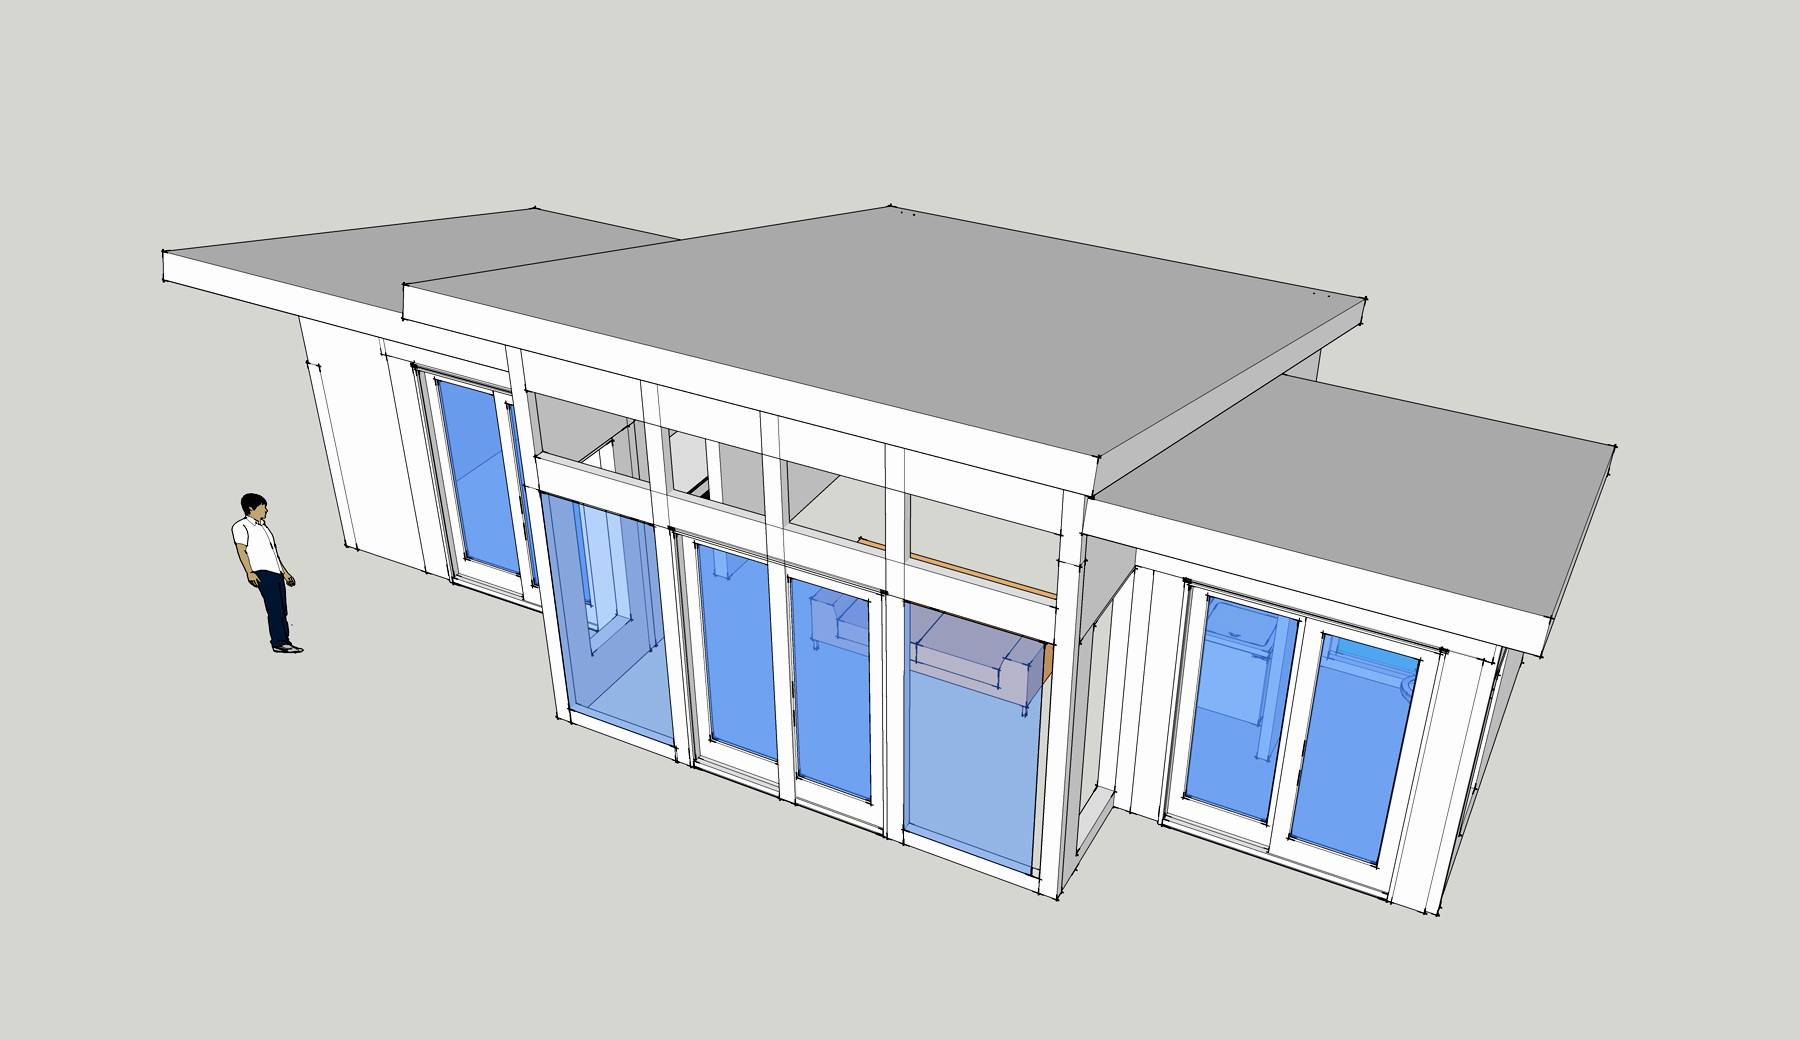 Simple Small Shed Roof House Design Placement Home Plans Blueprints